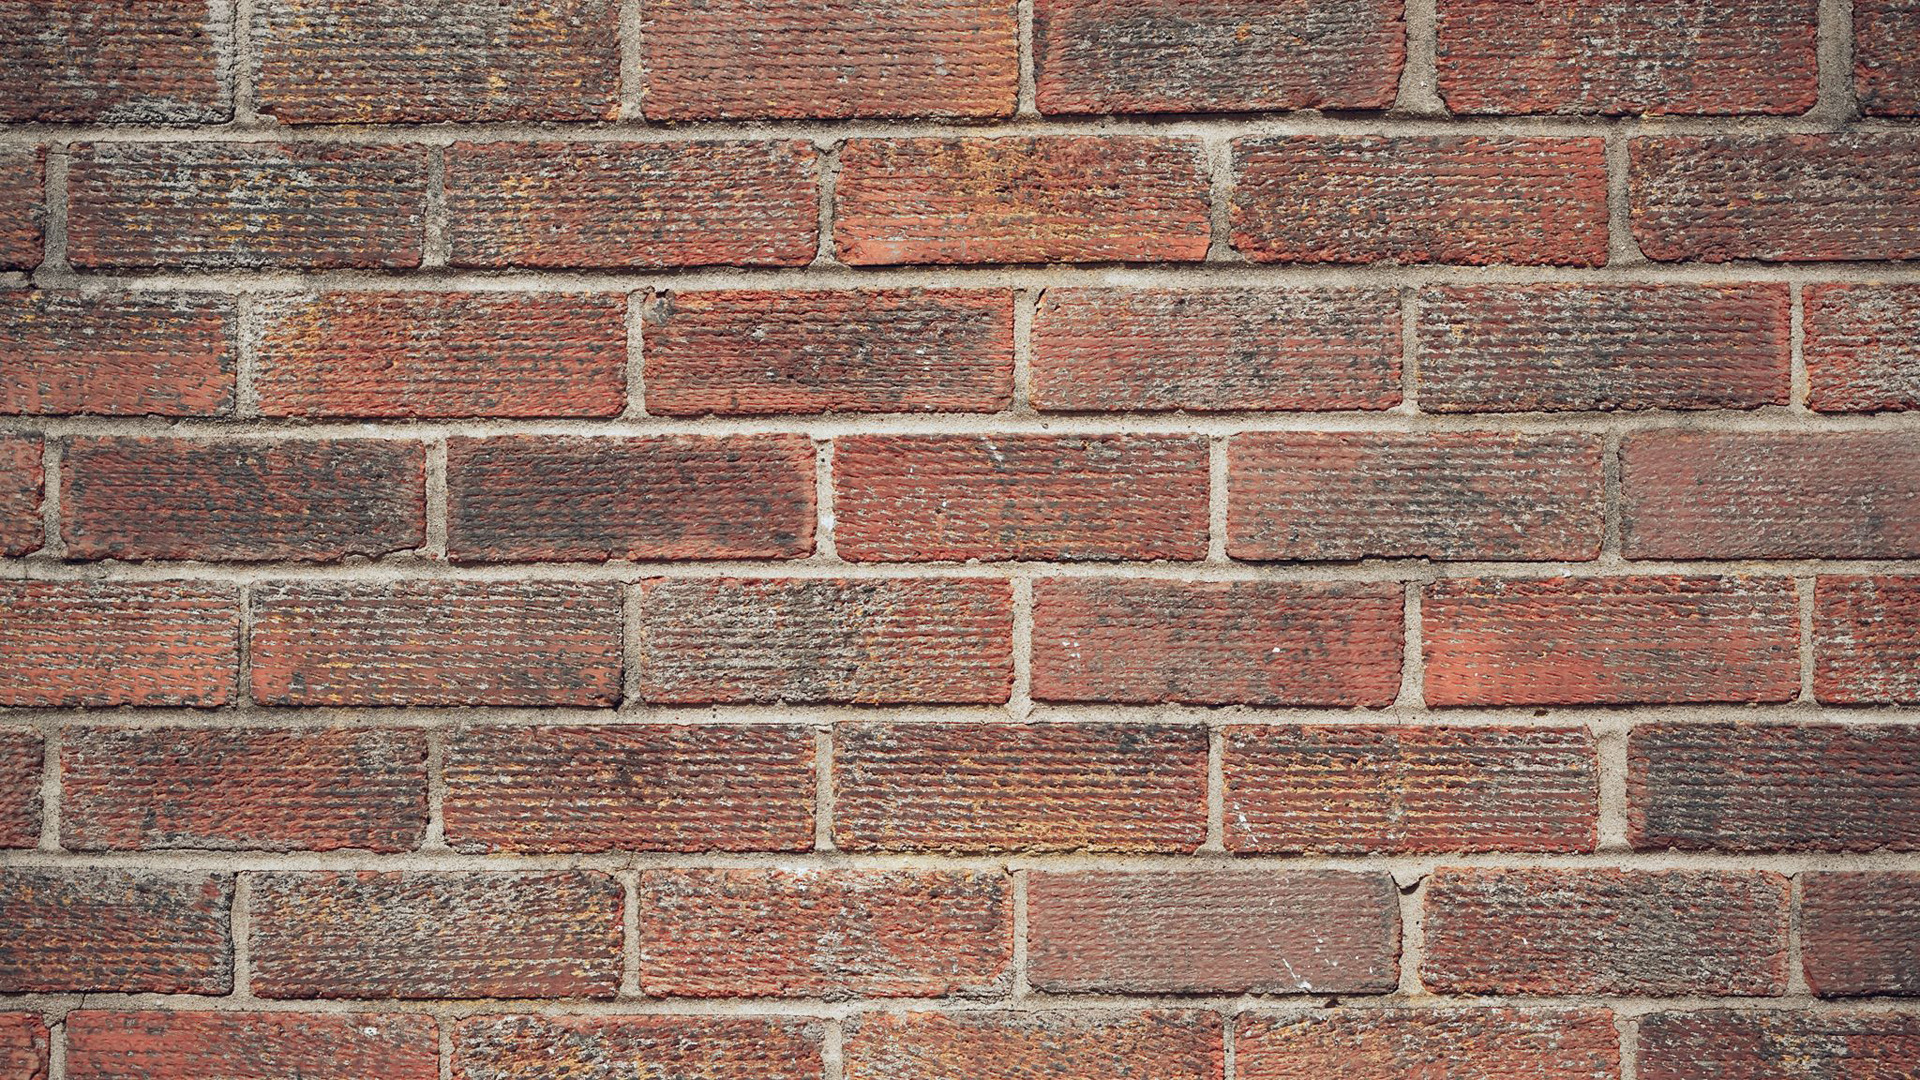 40 HD Brick Wallpapers/Backgrounds For Free Download